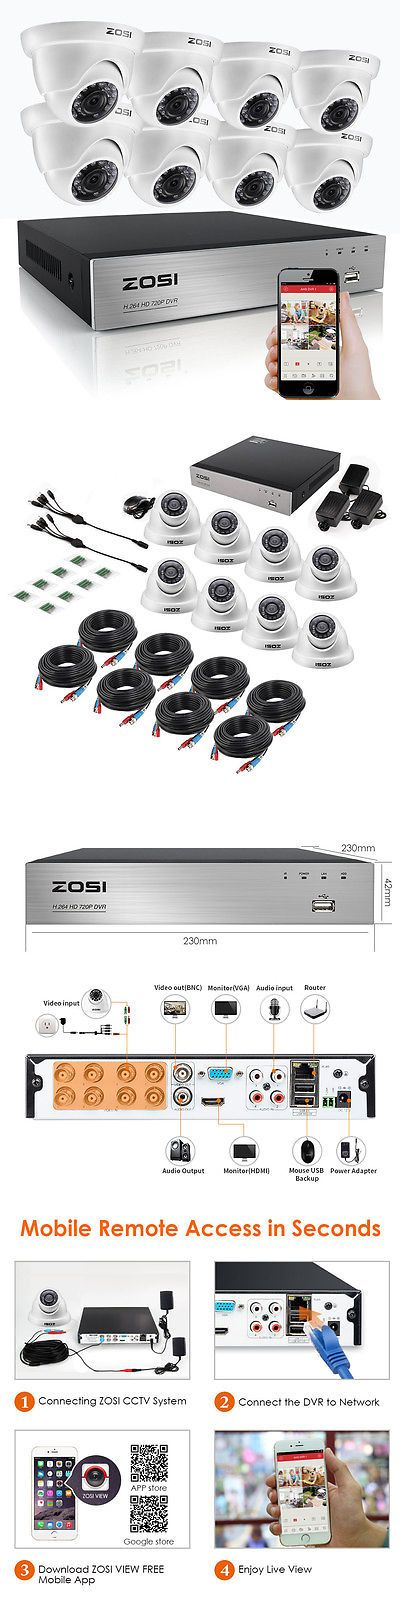 Surveillance Security Systems: Zosi 8Ch 1080N Hdmi Dvr W 8 1.0Mp Outdoor Ir Dome Home Security Camera System -> BUY IT NOW ONLY: $143.99 on eBay!